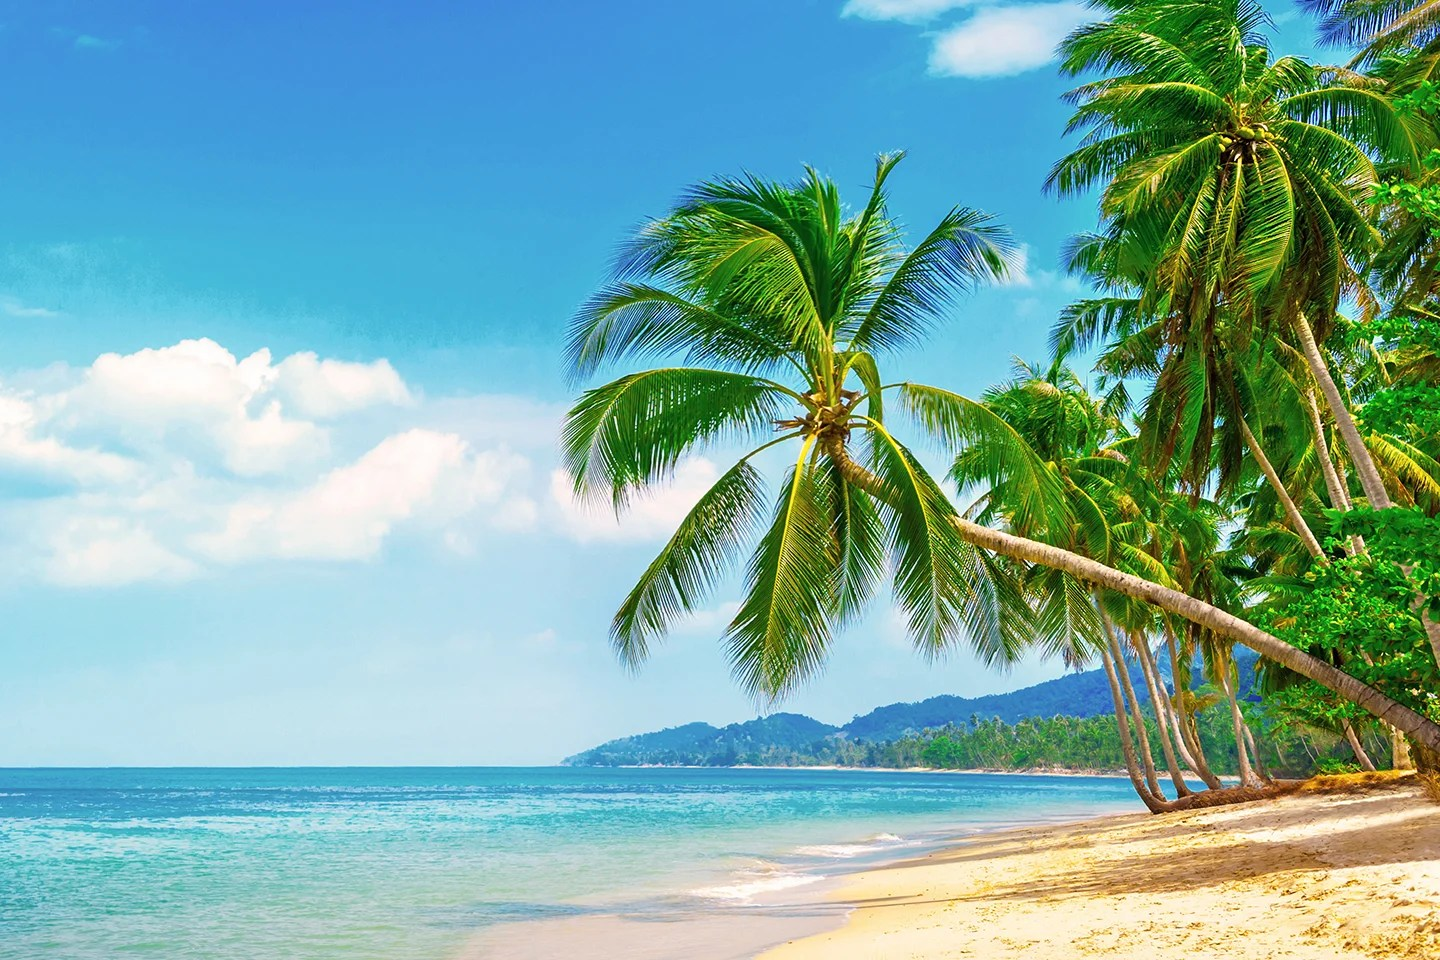 A sunny beach on Hawaii, with palm trees and yellow sand on the right, blue ocean on the left, and mountains in the distance.